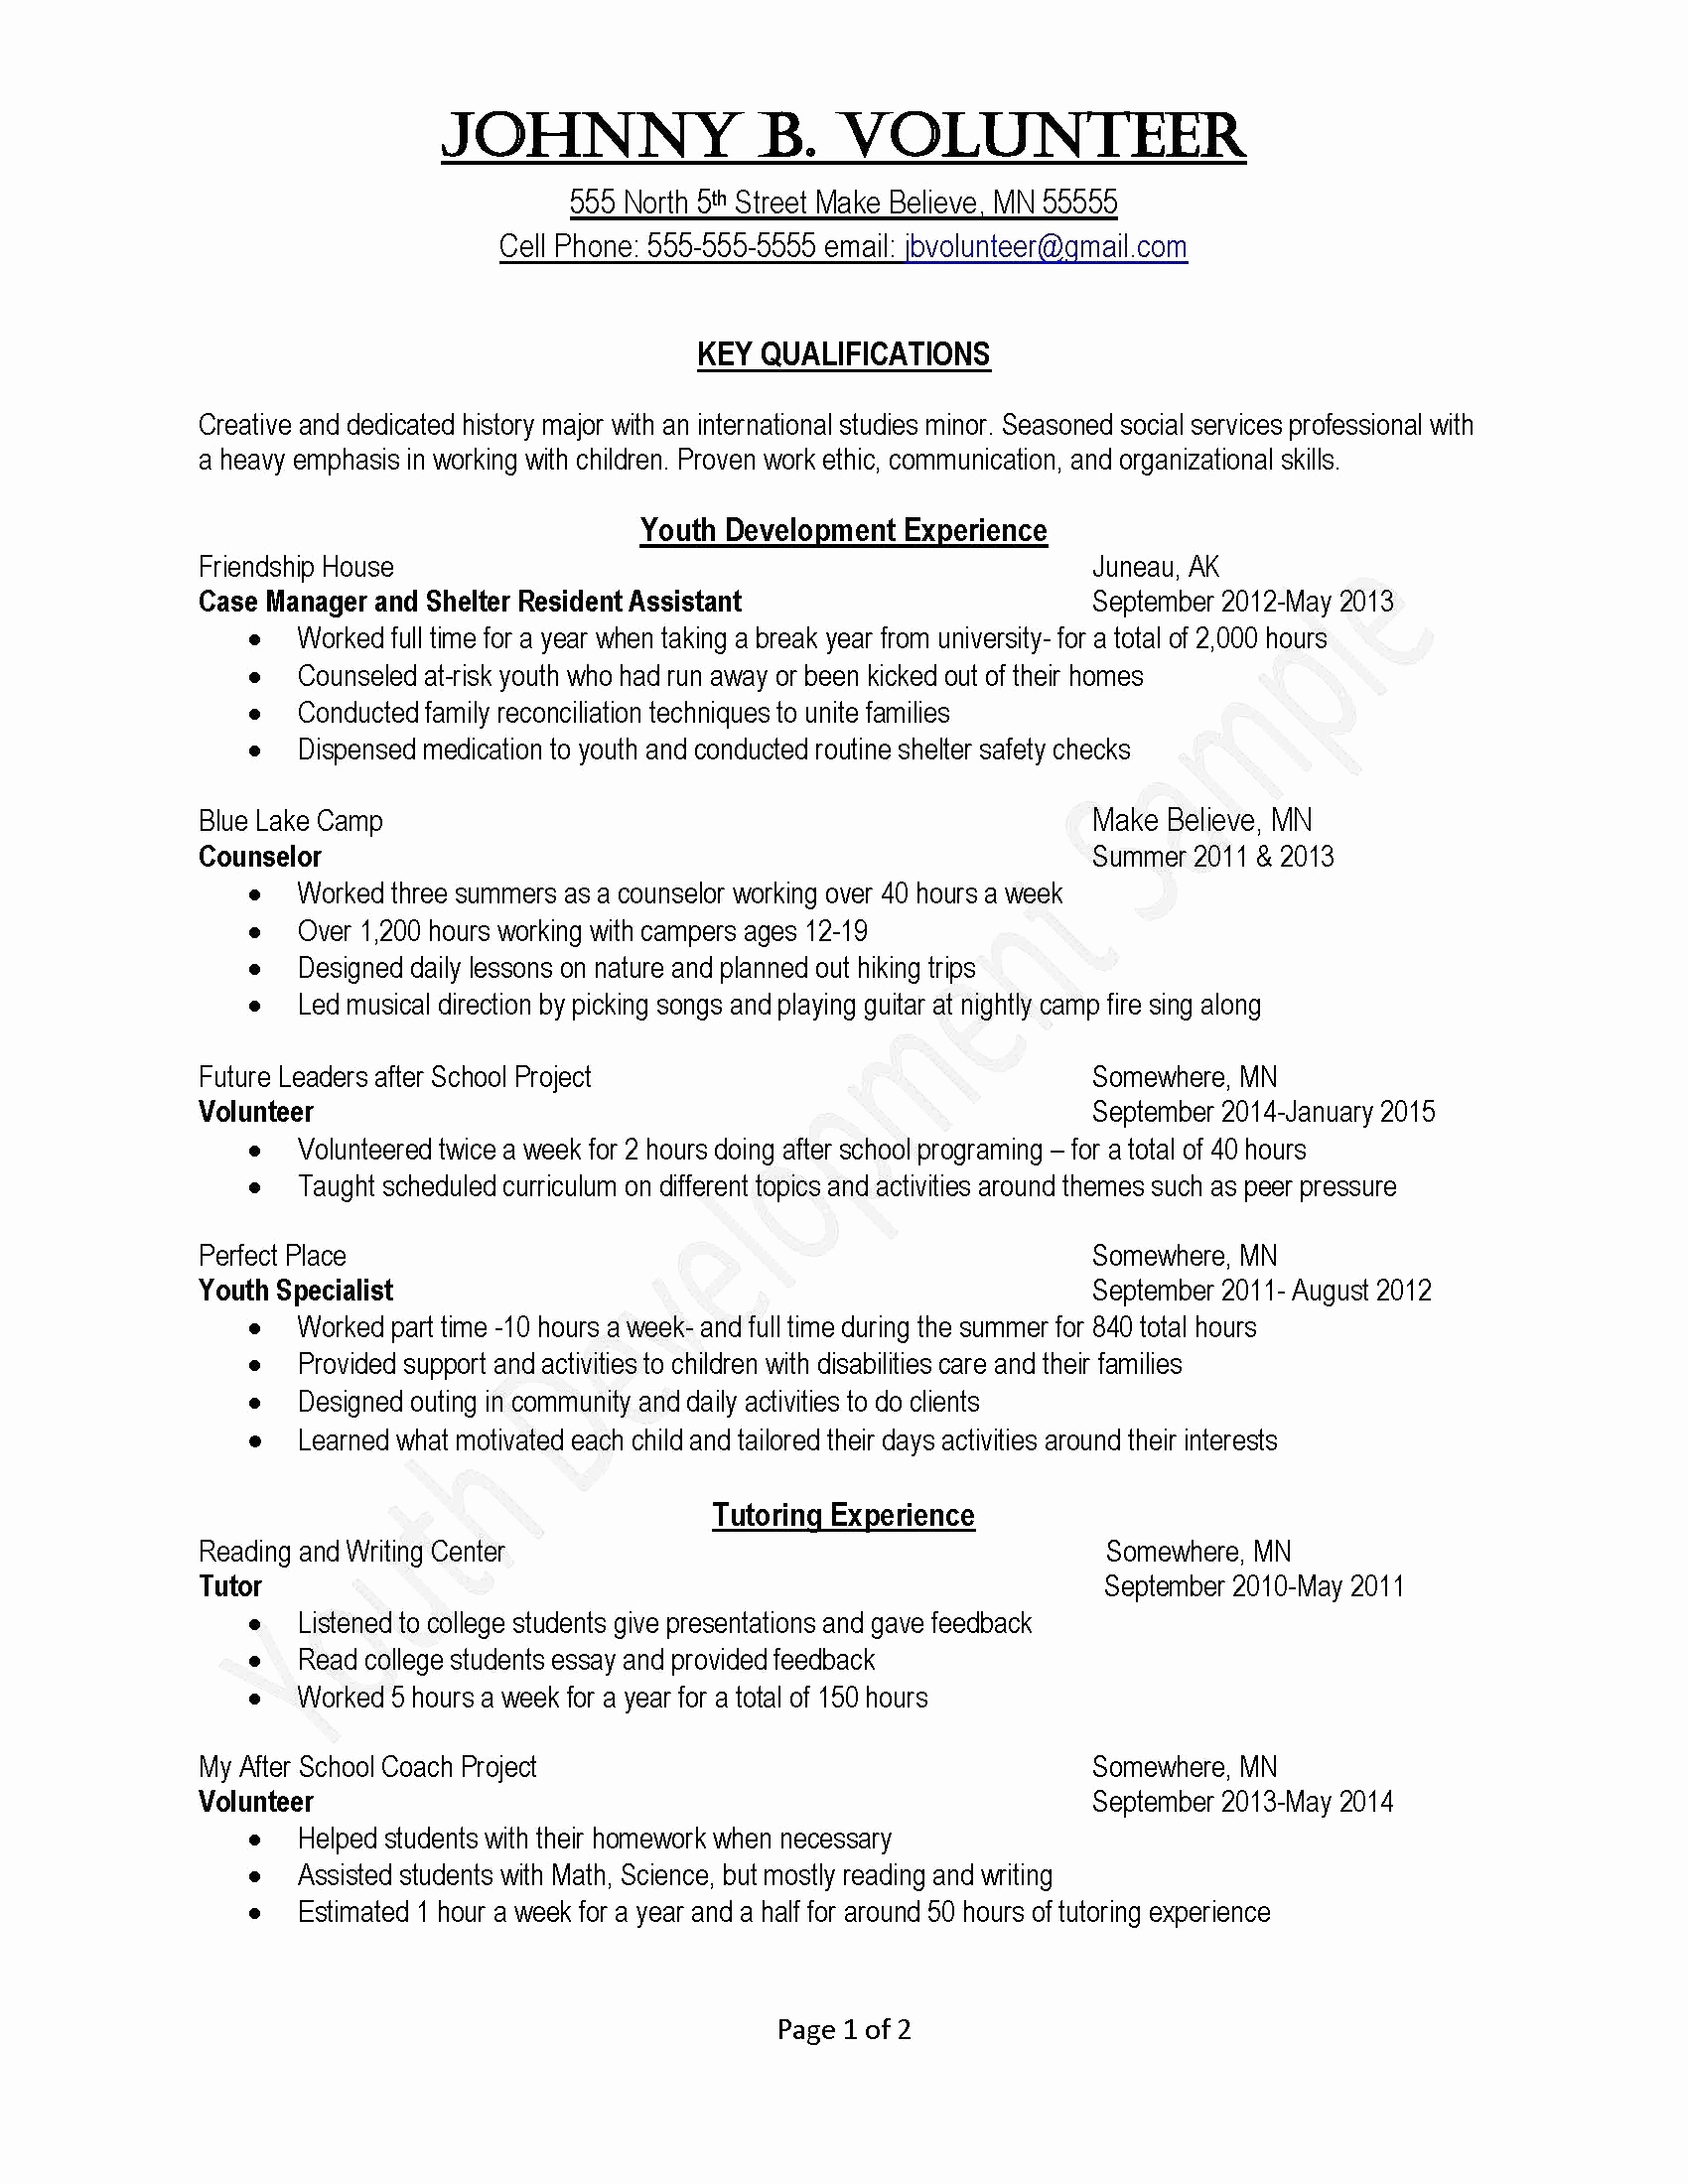 Cover Letter Template Pdf - Good Cover Letter Template Unique Good Cover Letters for Jobs Unique